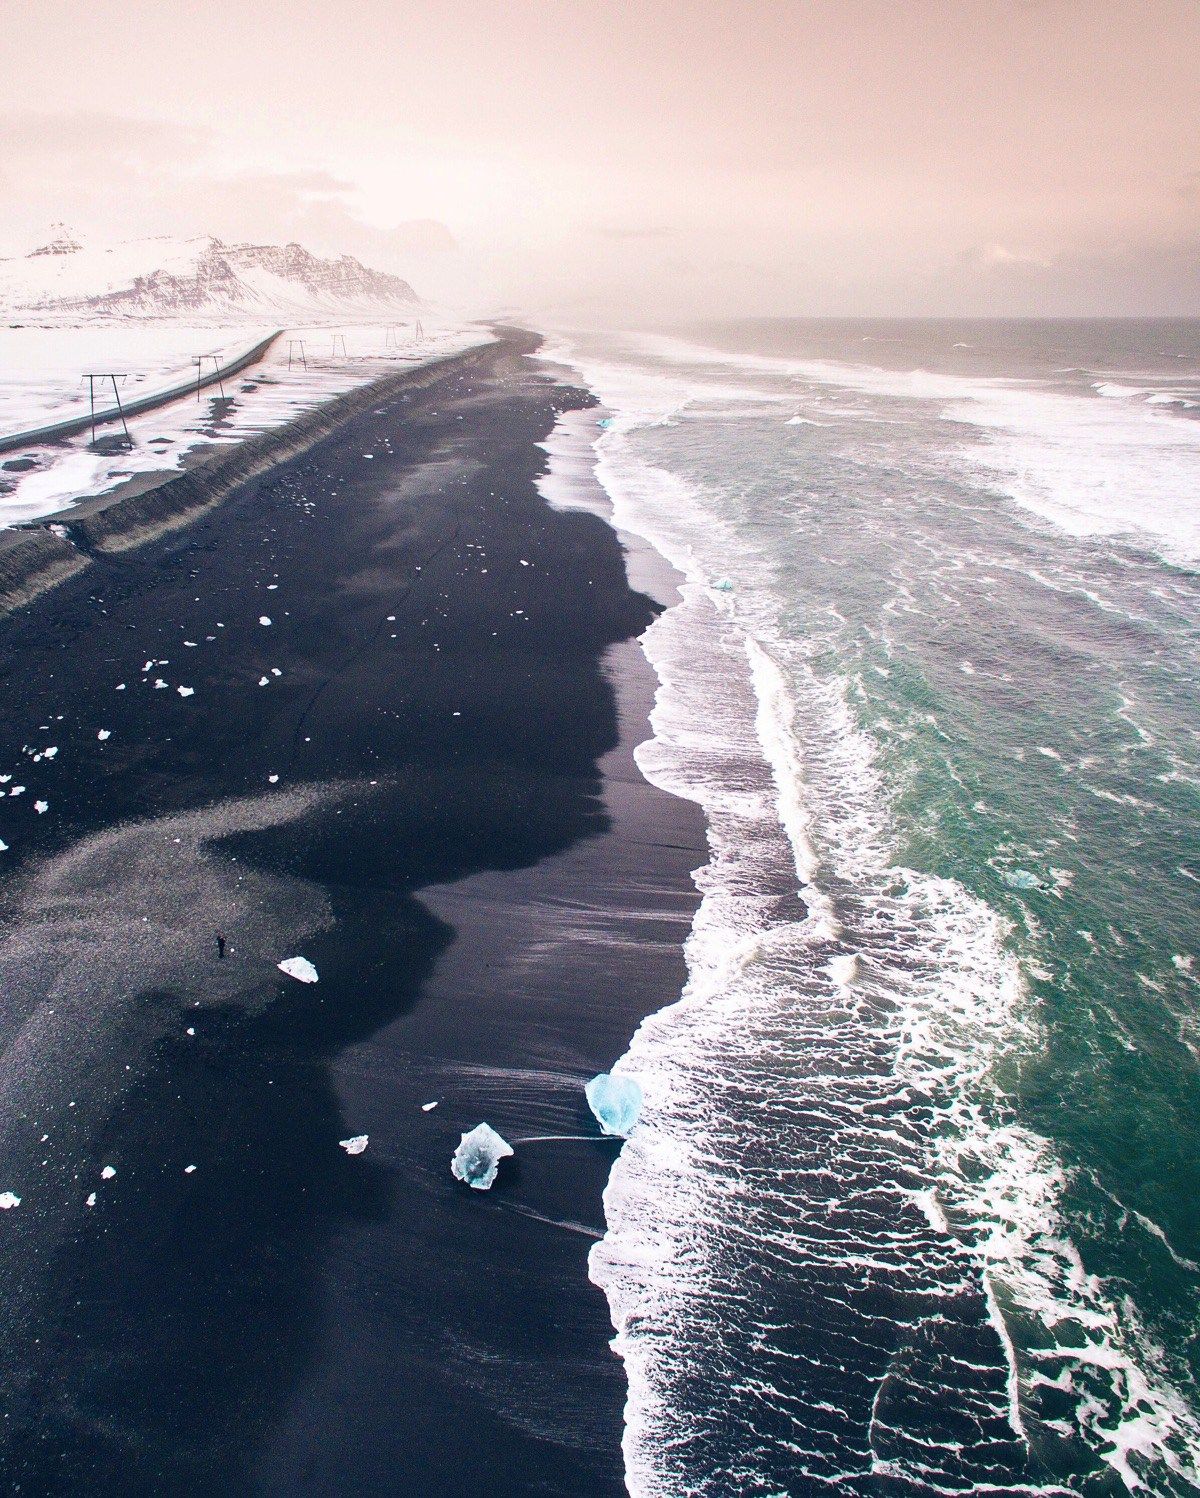 Remarkable Drone Photography By Dirk Dallas